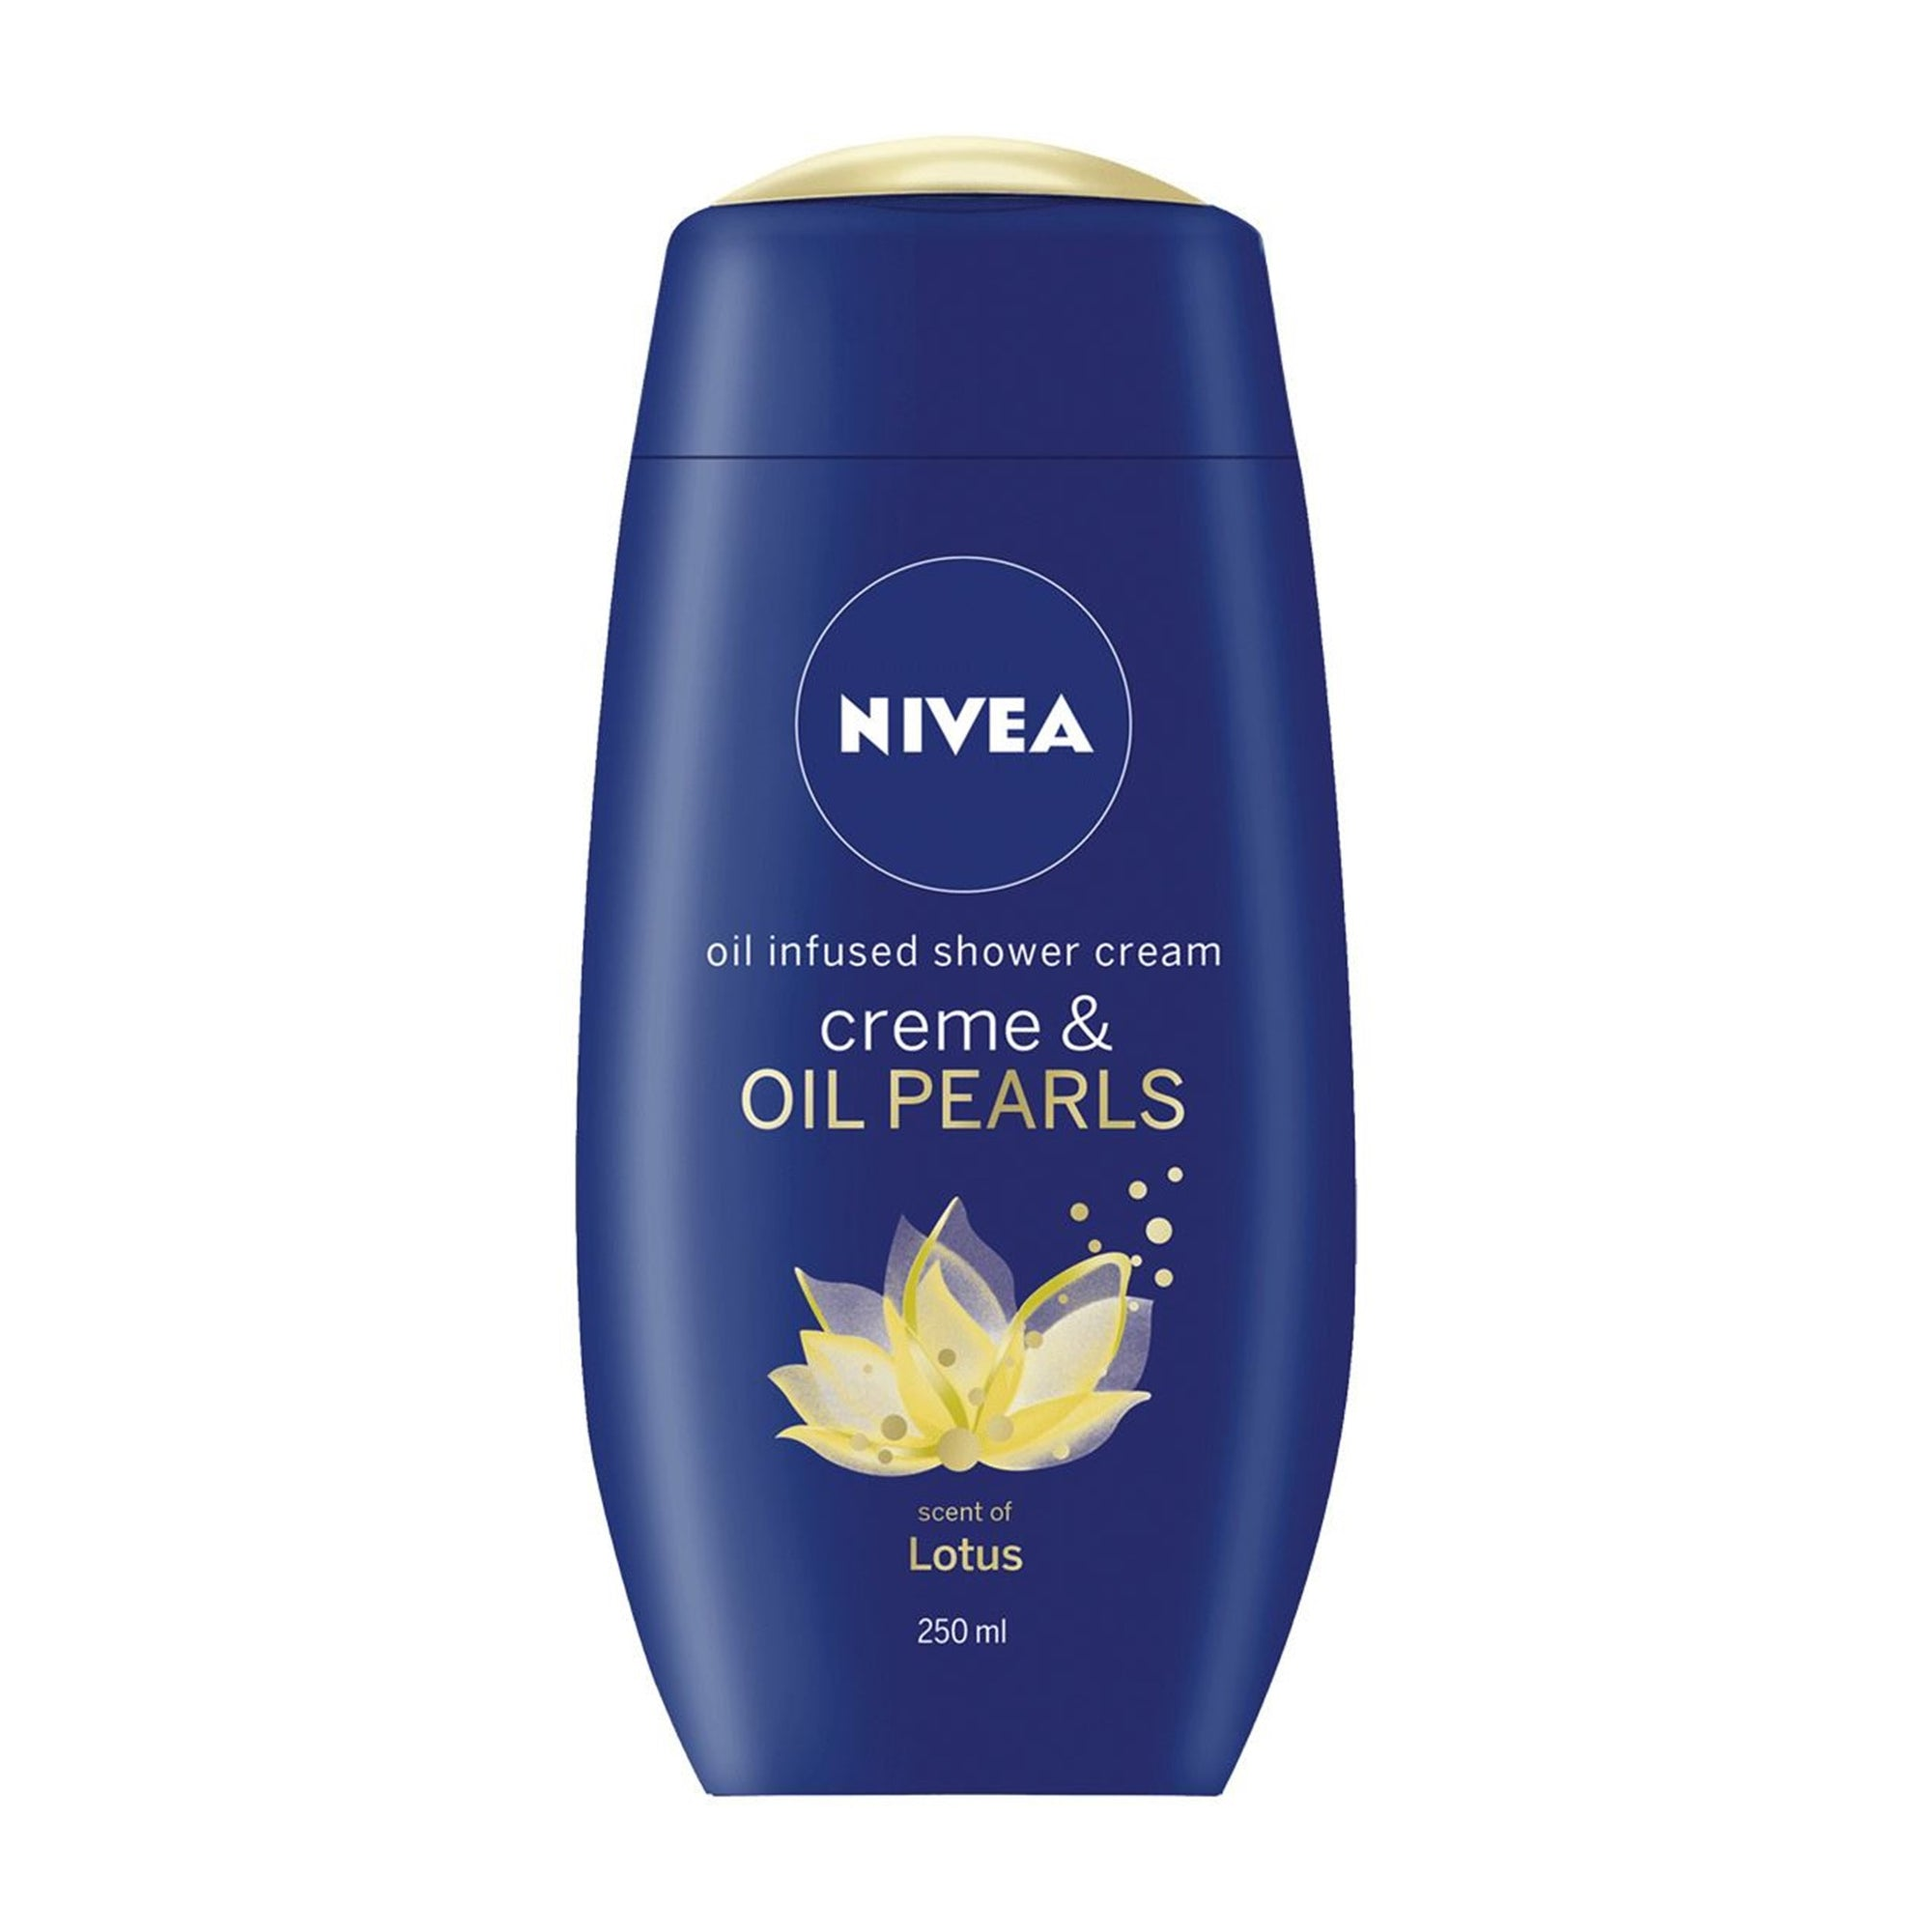 Nivea Oil Infused Shower Cream & Oil Pearls Lotus 250ml